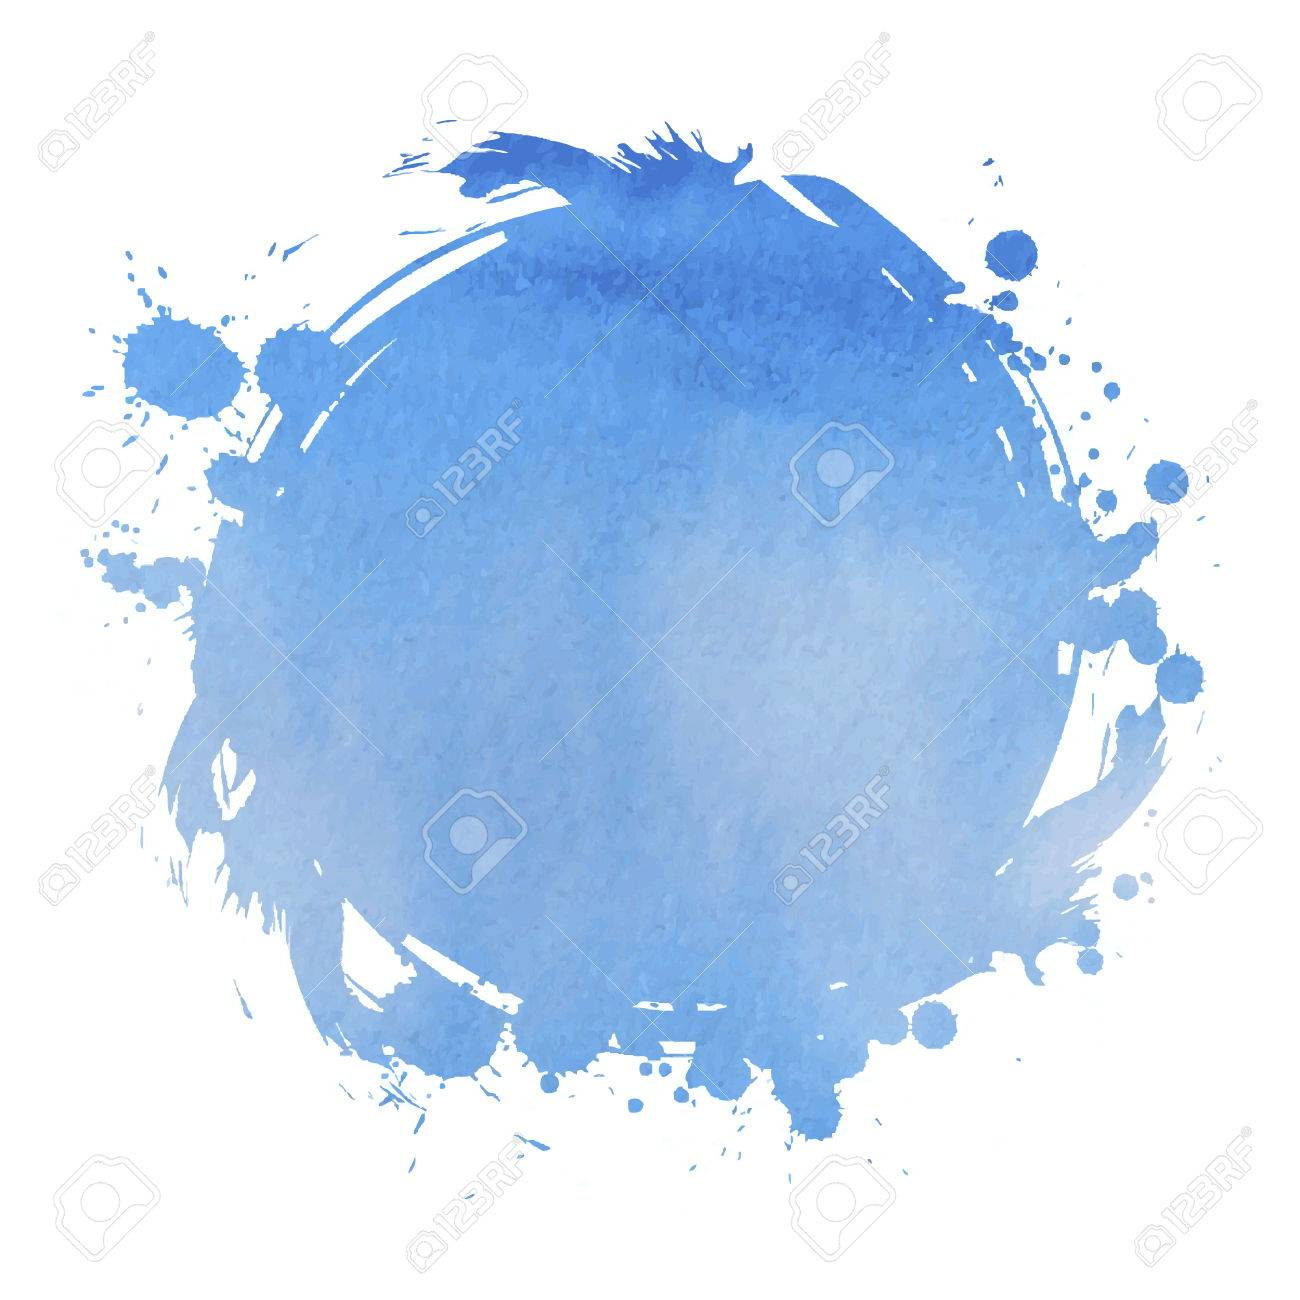 Blue square. Abstract stylish watercolor background. Vector illustration - 41188171